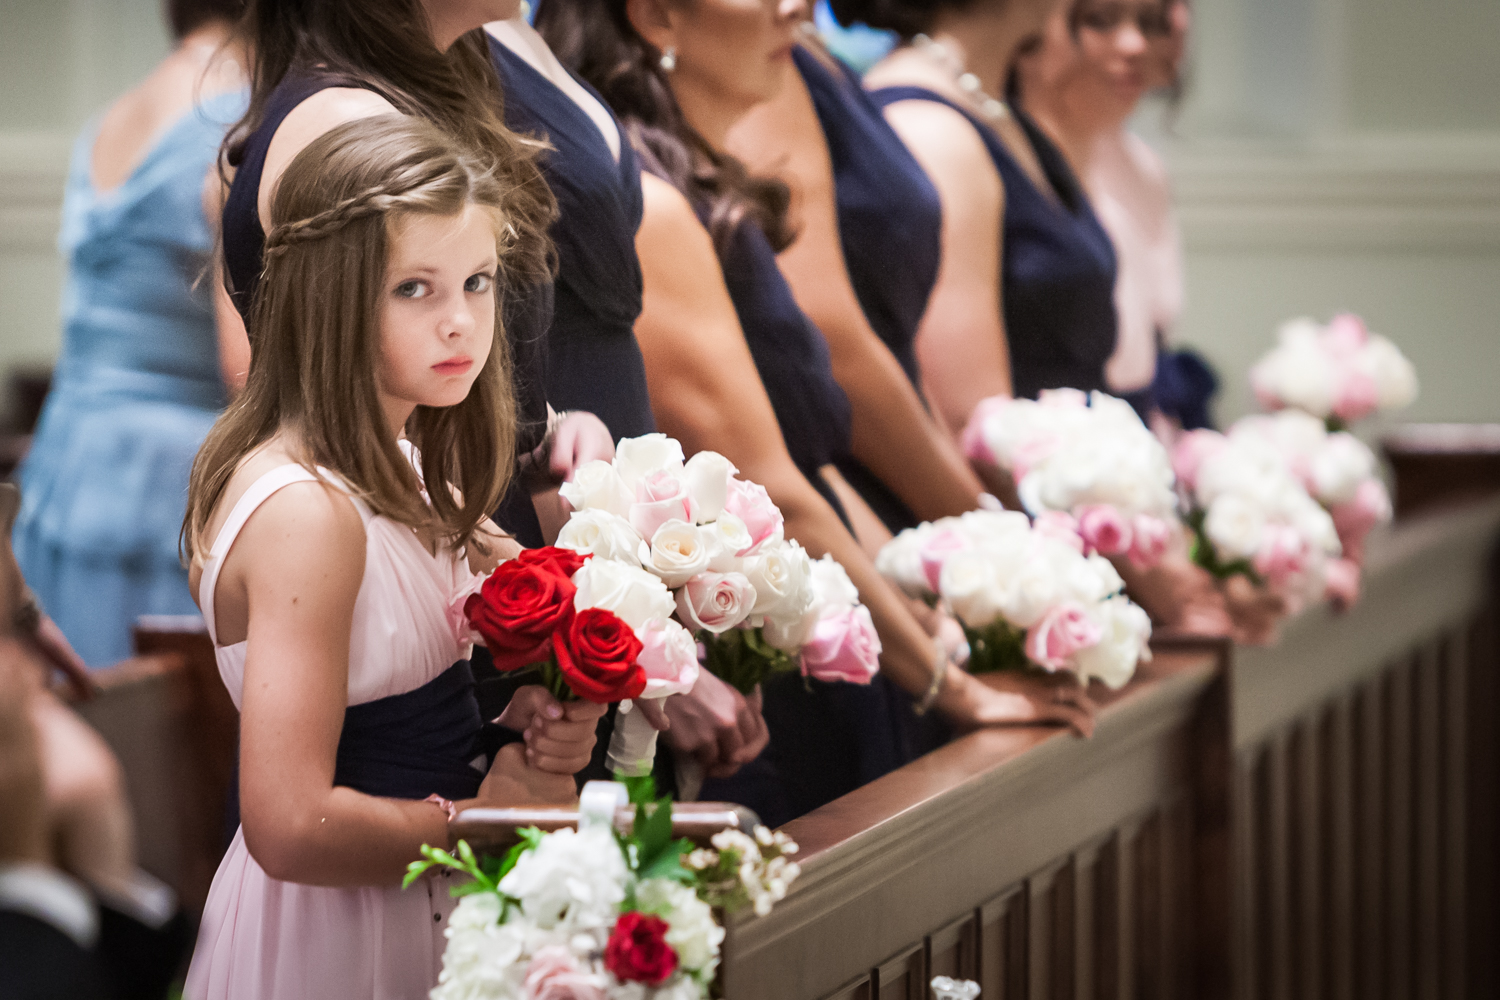 Young flower girl holding bouquet with bridesmaids in background